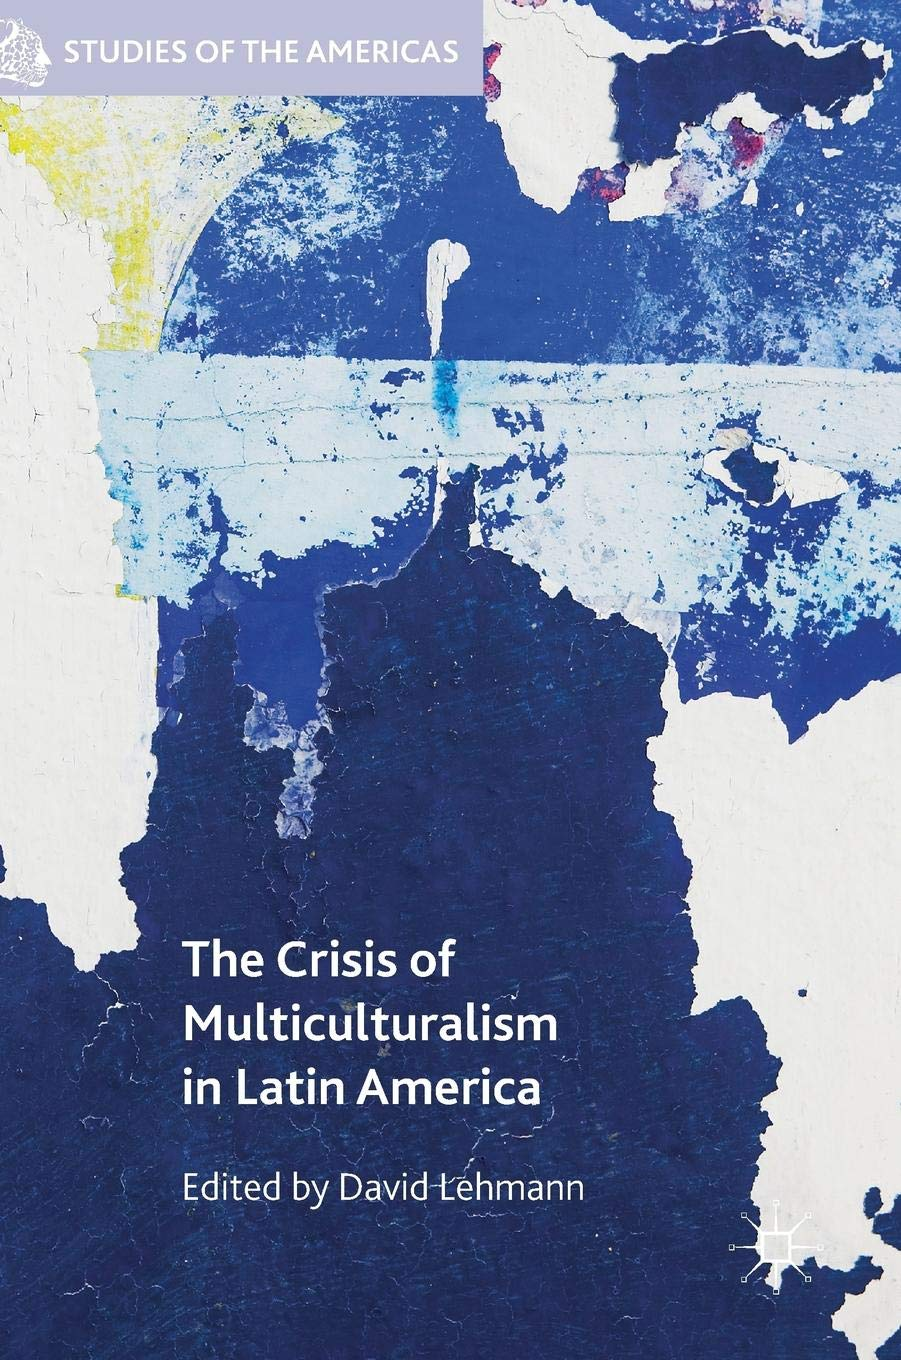 The Crisis of Multiculturalism in Latin America